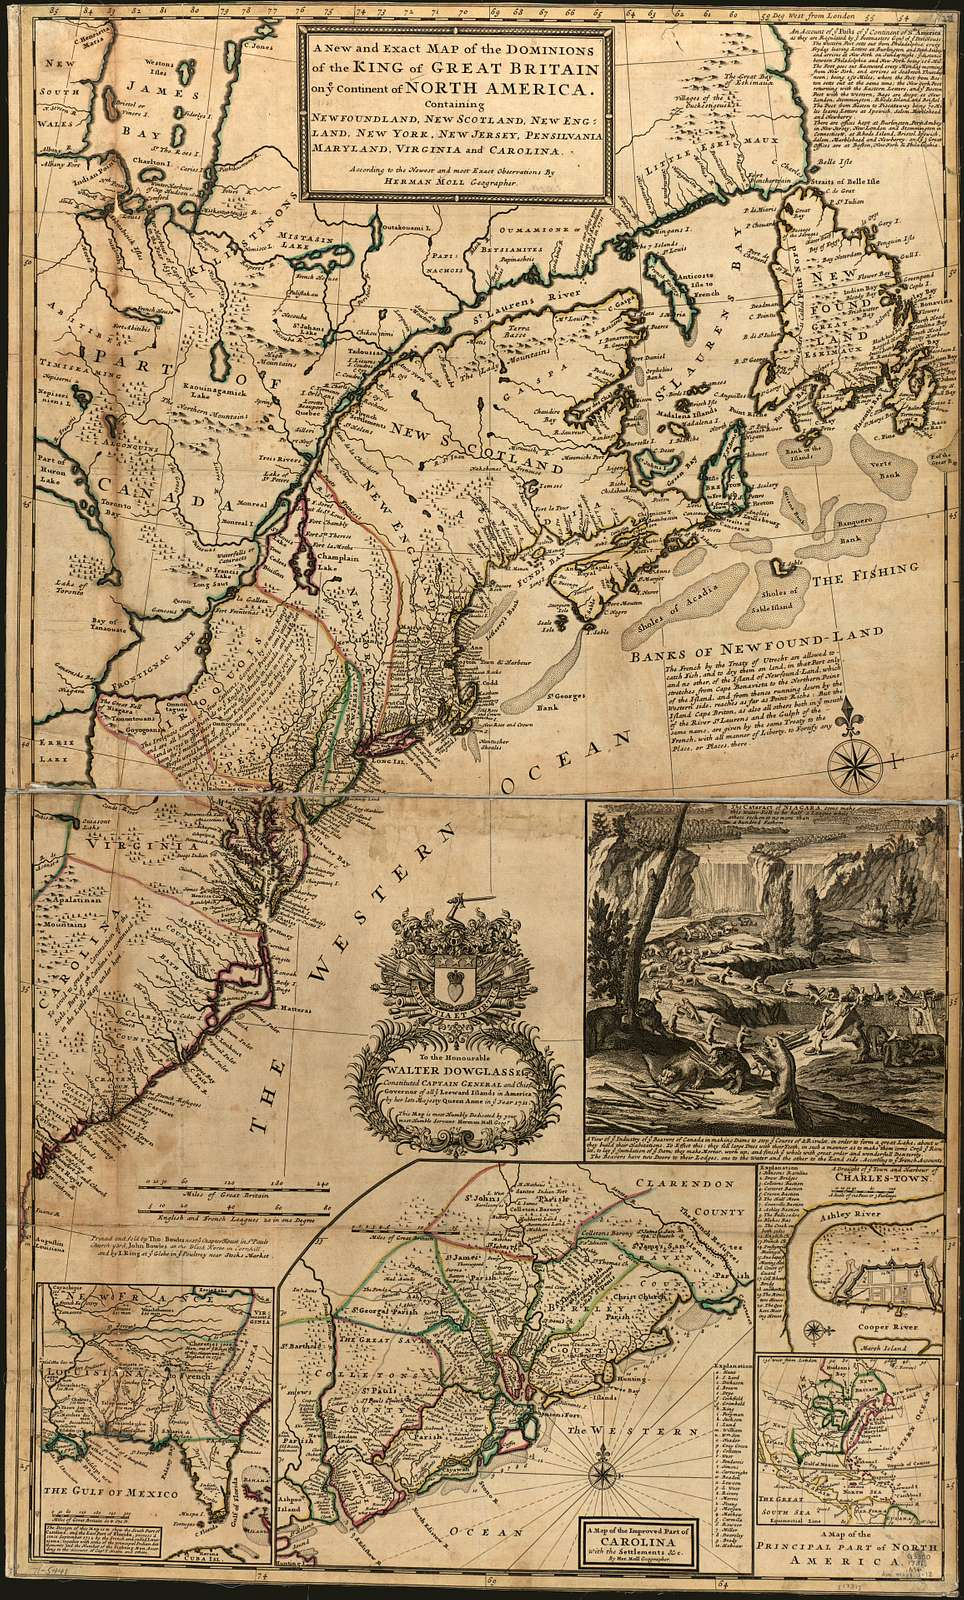 A new and exact map of the dominions of the King of Great Britain on ye continent of North America, containing Newfoundland, New Scotland, New England, New York, New Jersey, Pensilvania, Maryland, Virginia and Carolina.